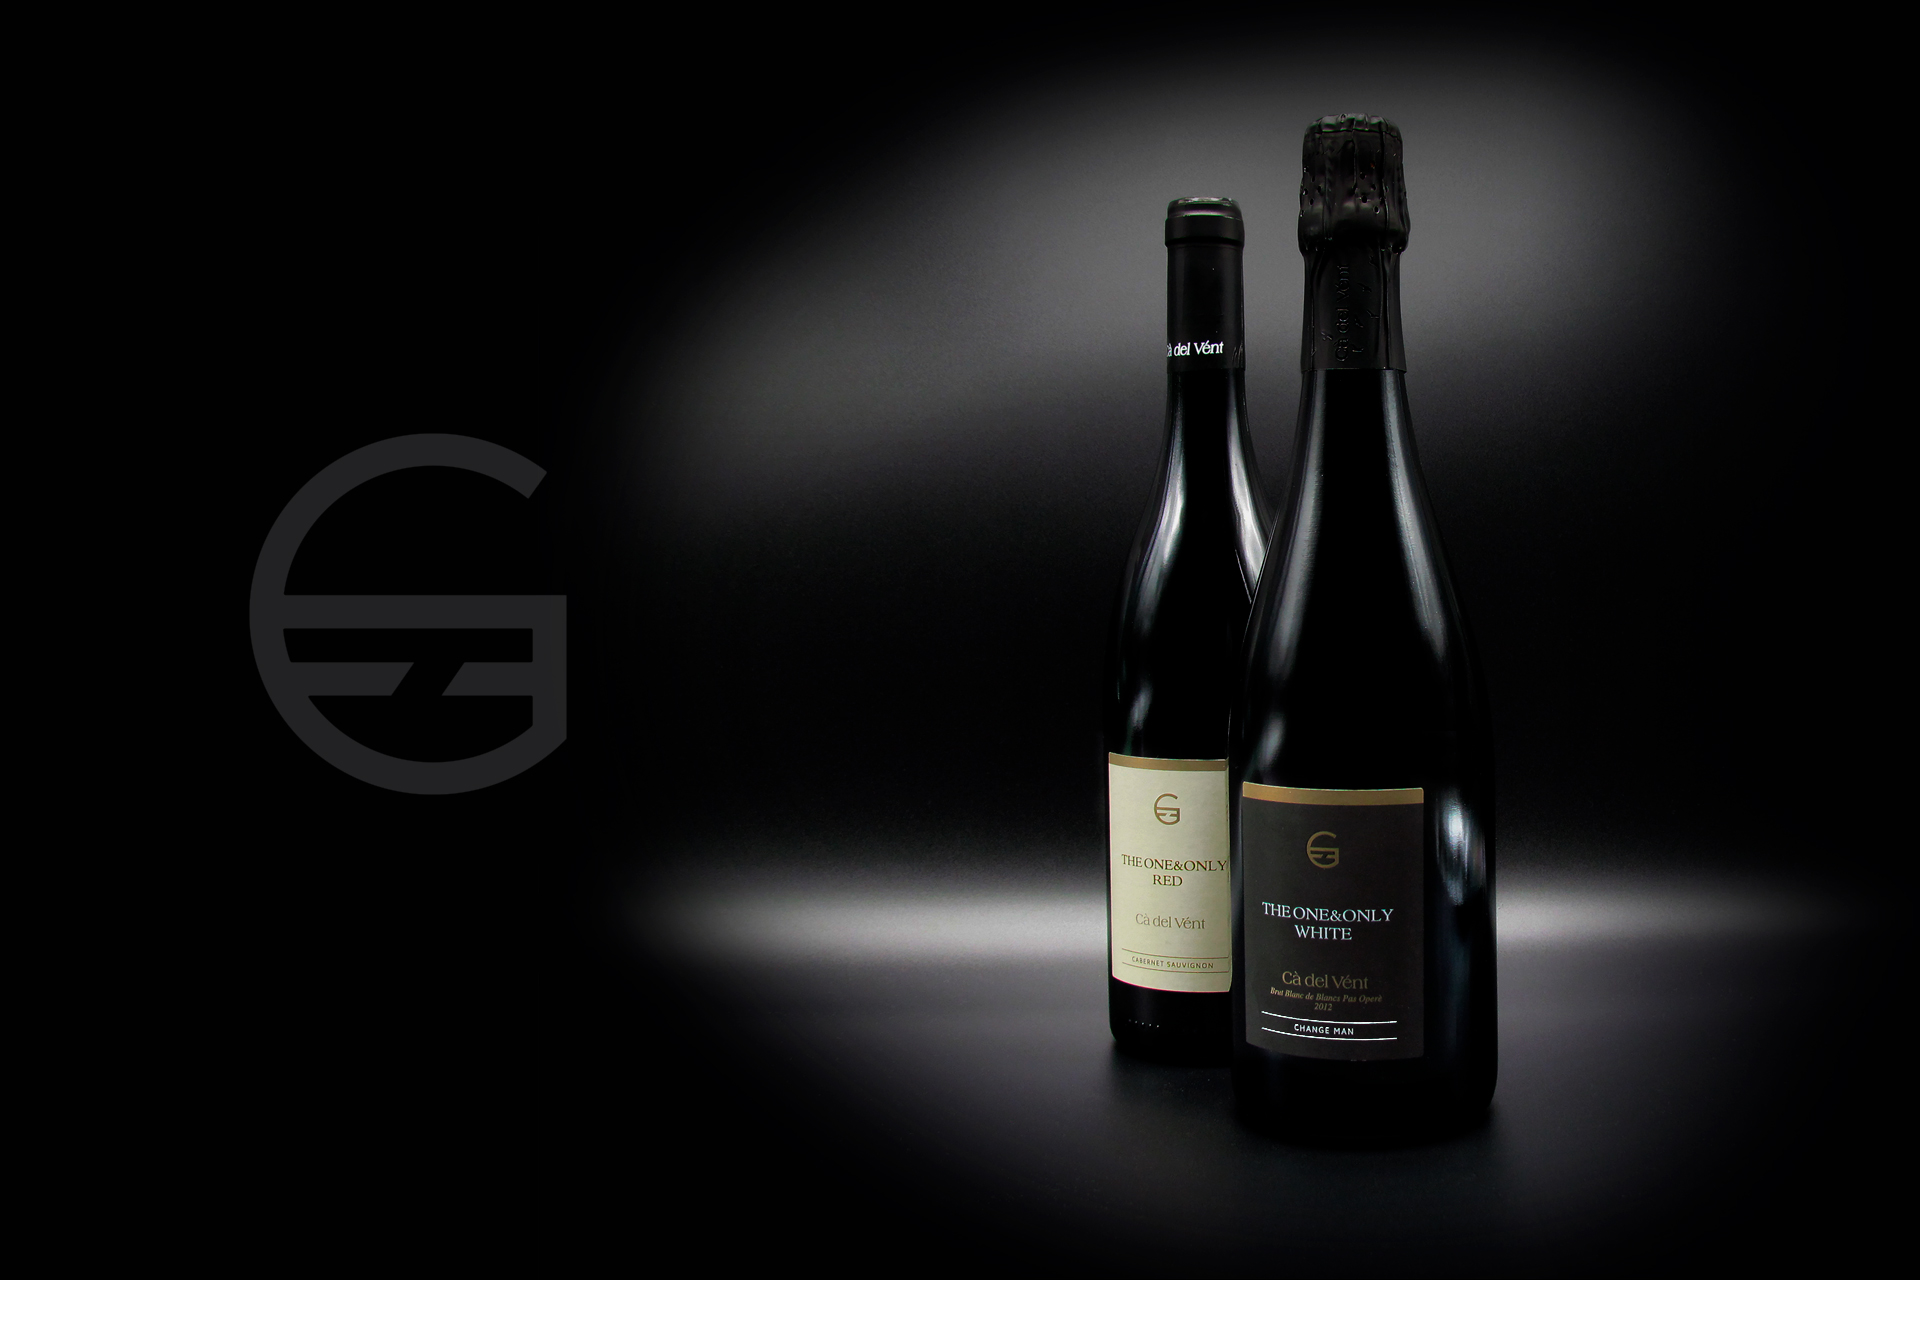 G-The-label-wine-3